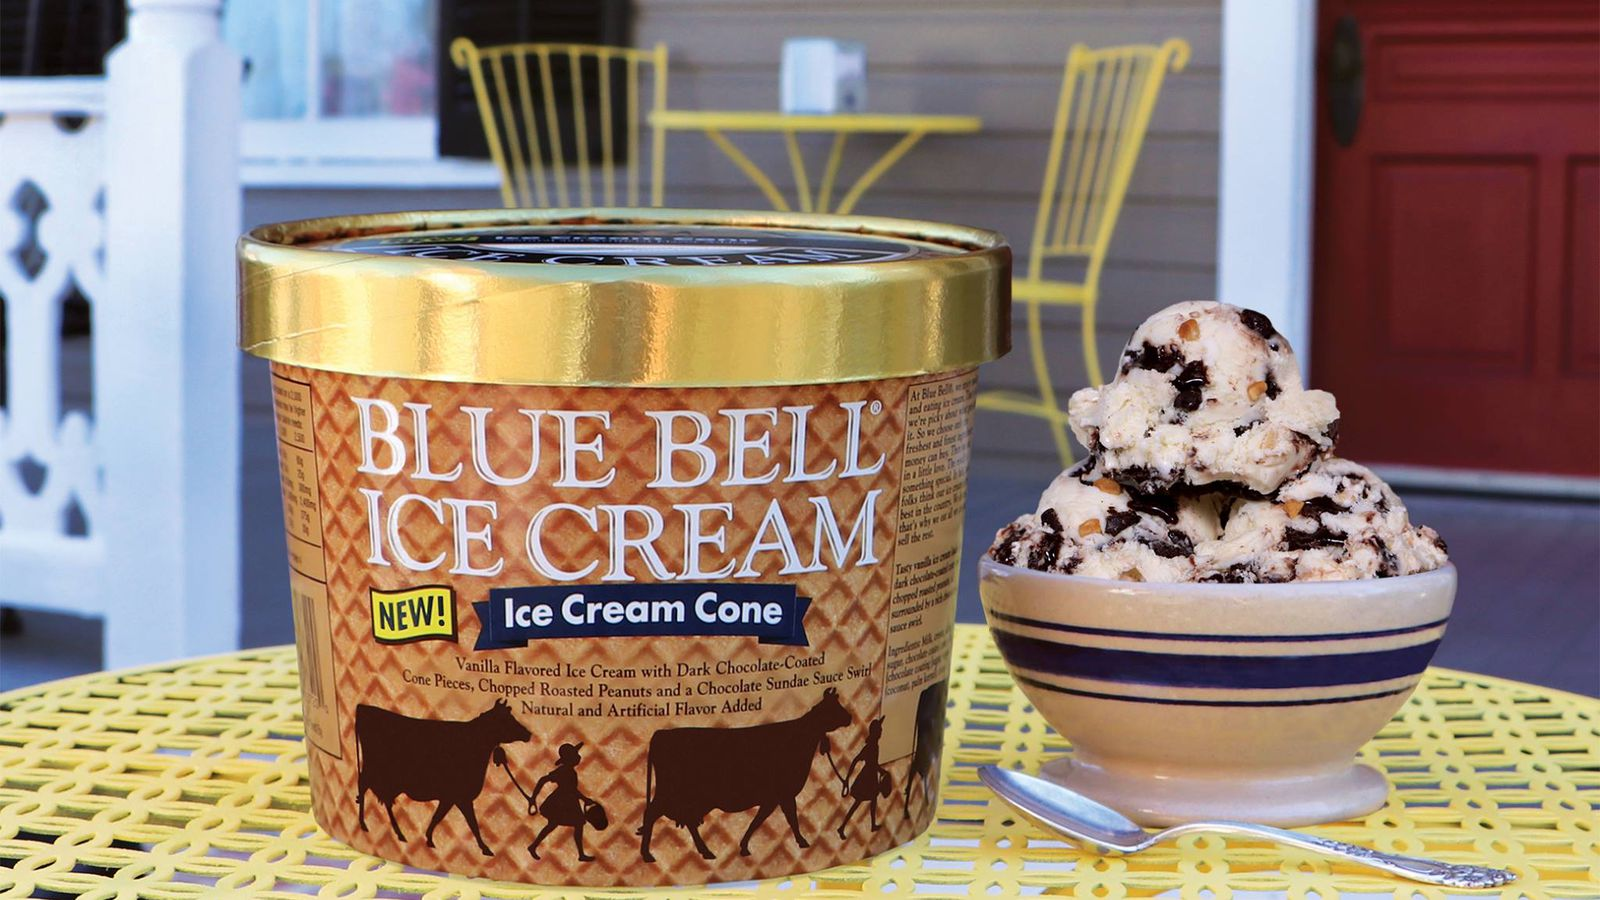 Blue Bell Ice Cream S New Flavor And More A M Intel